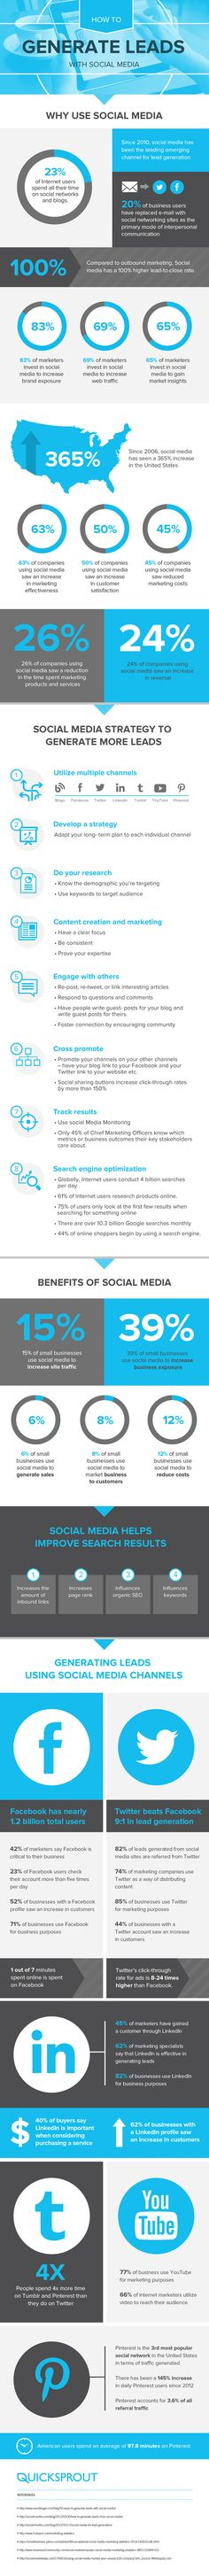 How to Generate Leads with Social Media [INFOGRAPHIC]